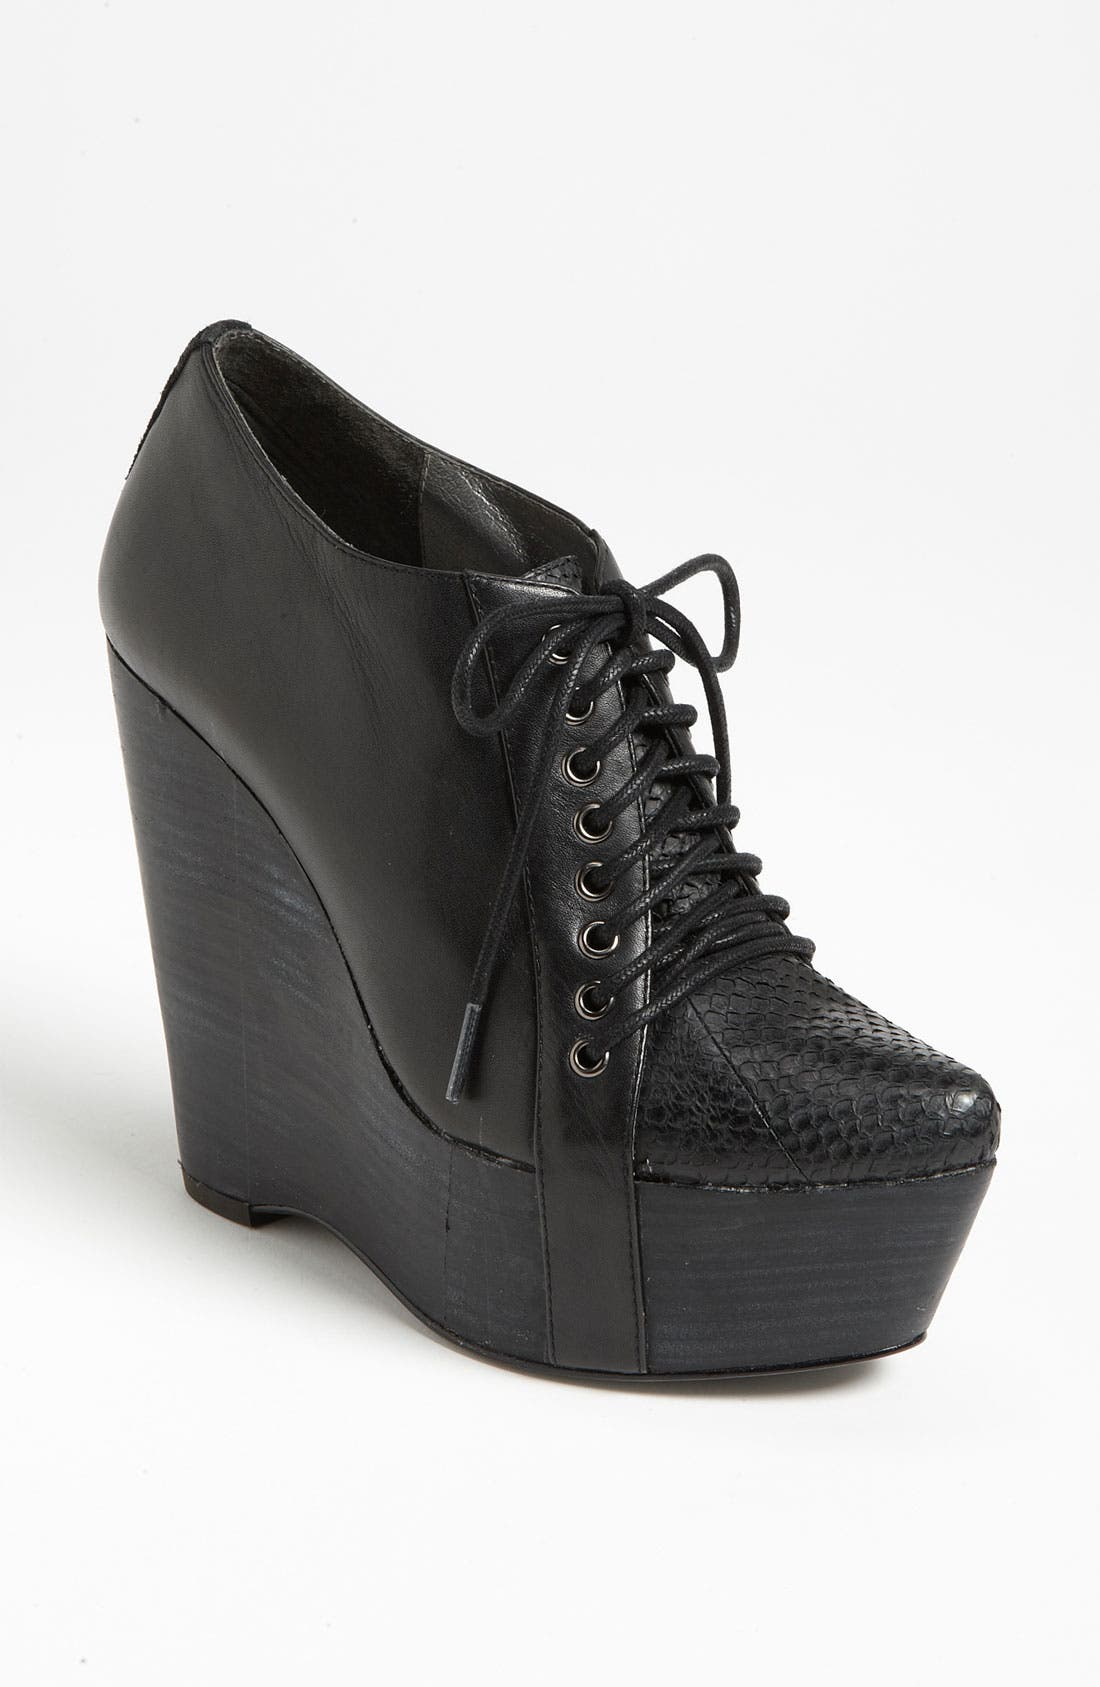 Alternate Image 1 Selected - Grey City 'Jennie' Wedge Bootie